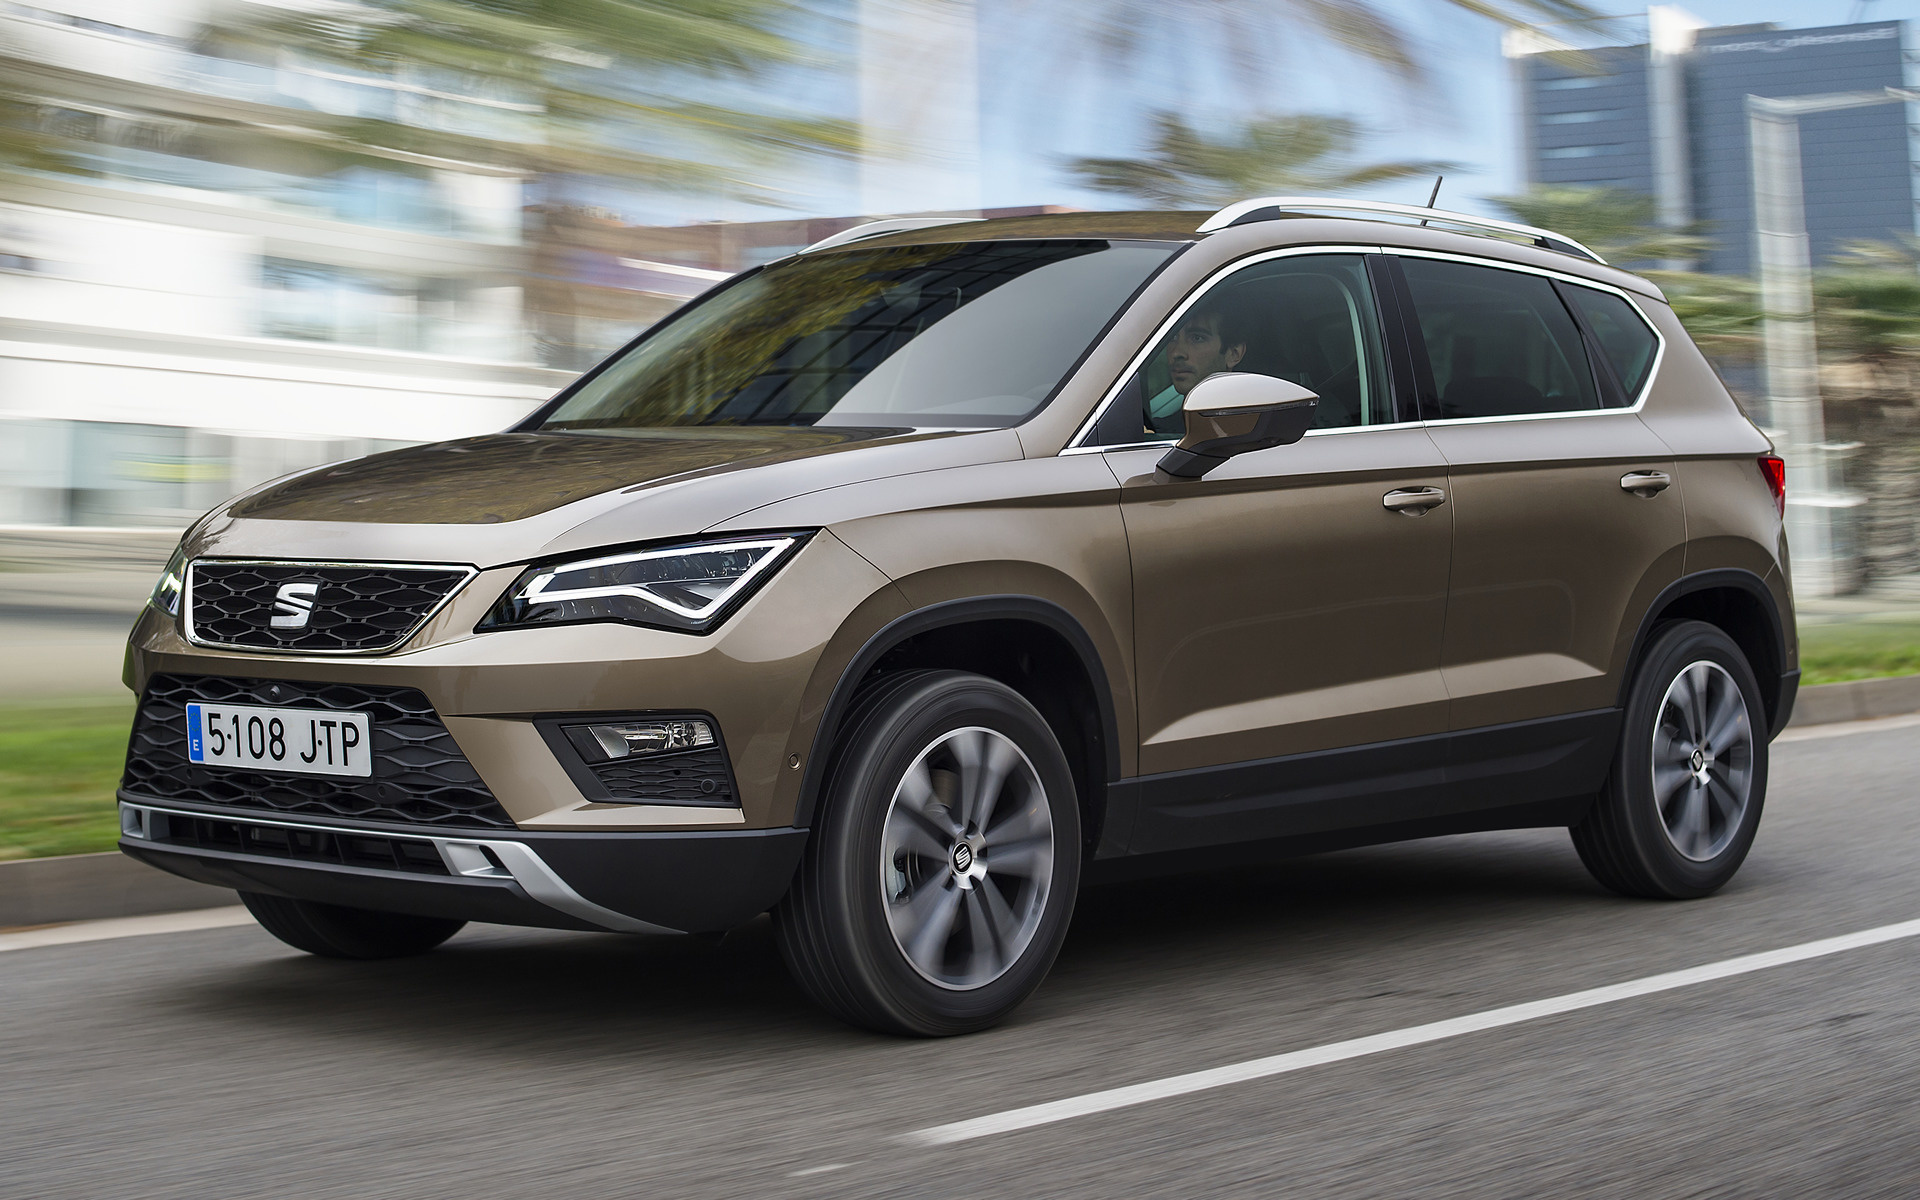 2016 Seat Ateca Wallpapers And Hd Images Car Pixel